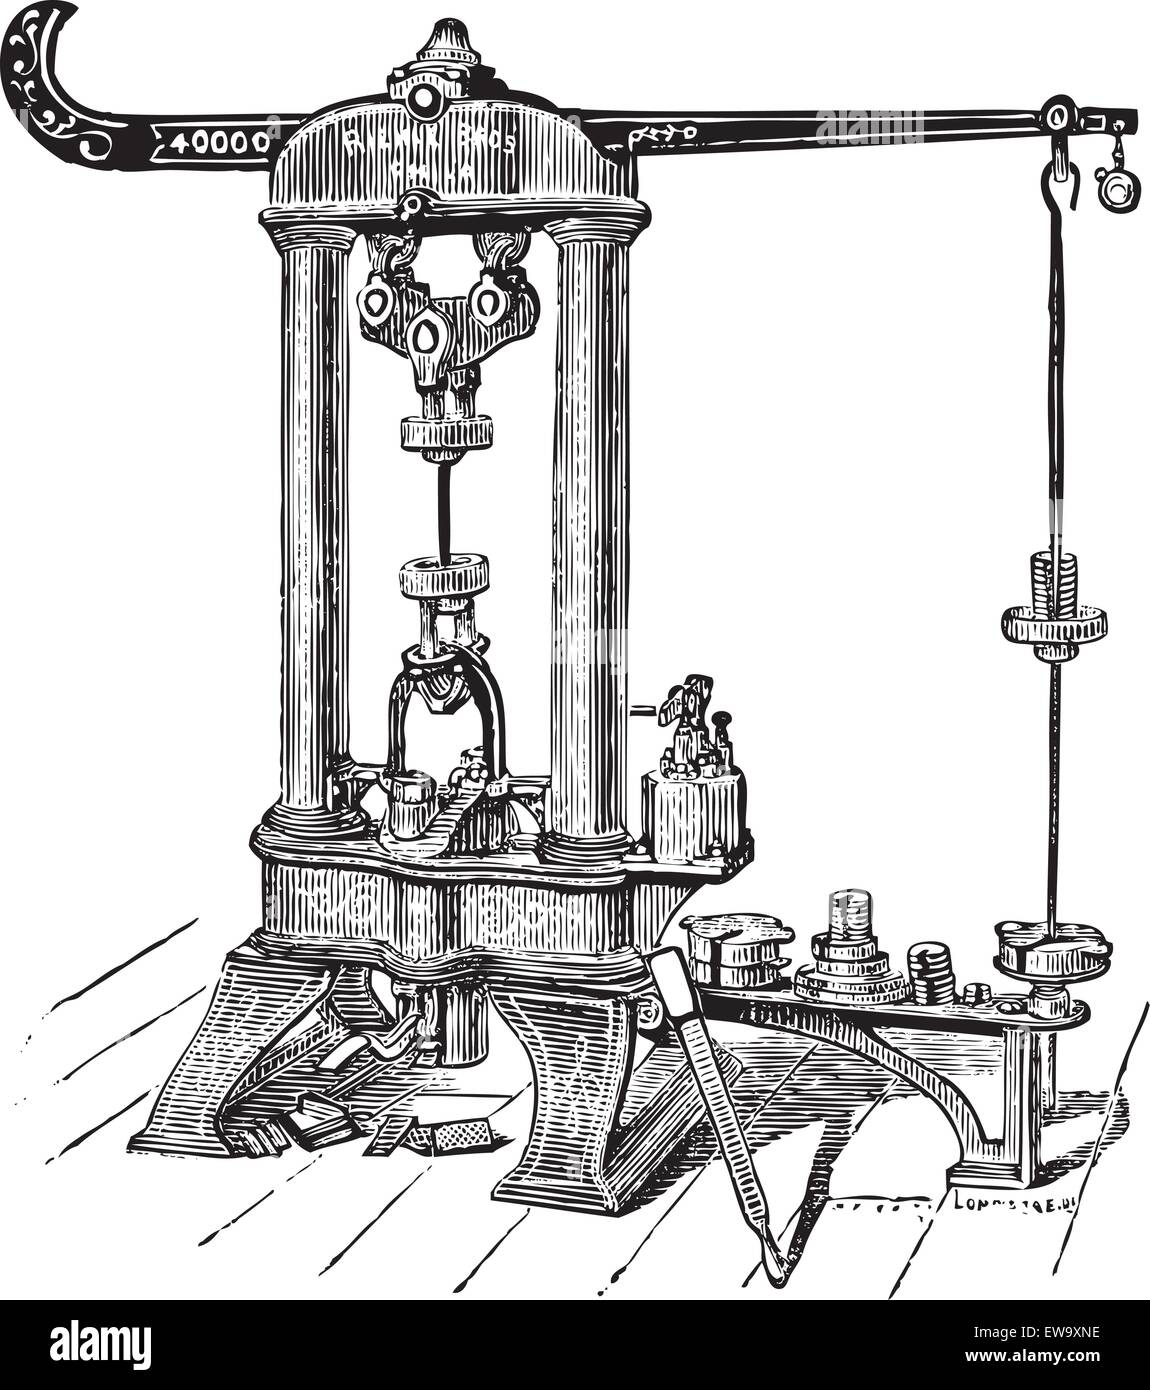 This Riehle testing machine was manufactured by Riehle Brothers, from Philadelphia. This type of machine was used - Stock Vector